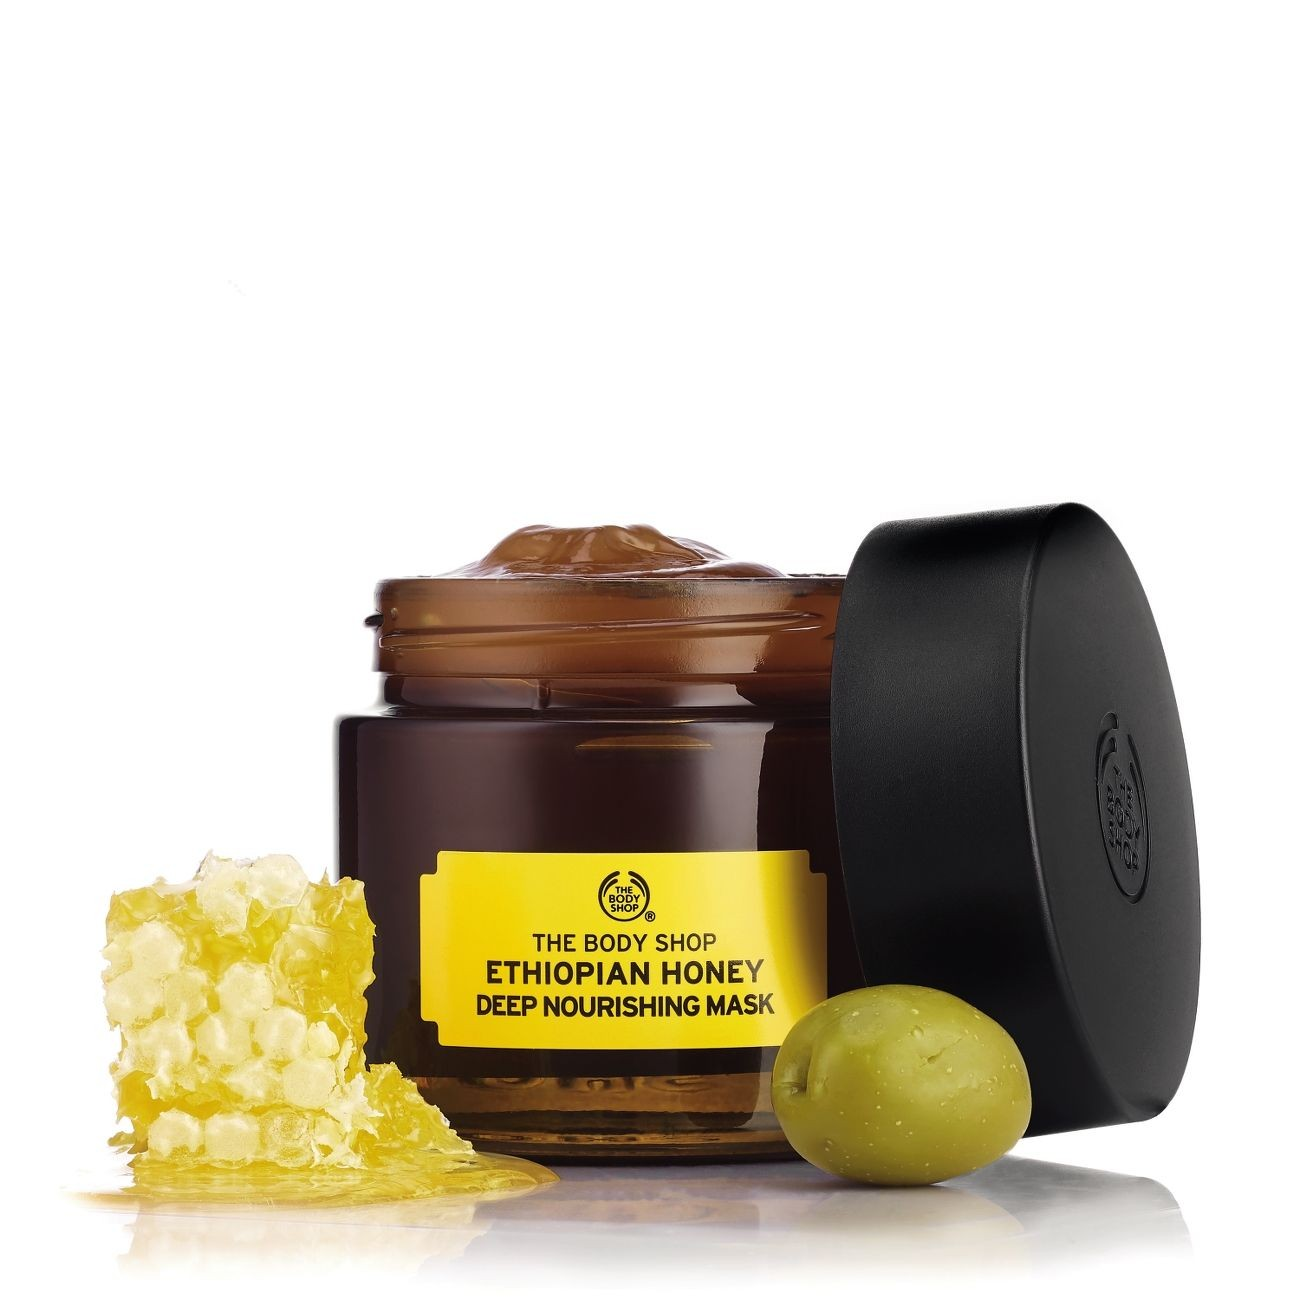 Ethiopian Honey Deep Nourishing Mask 75gr - The Body Shop